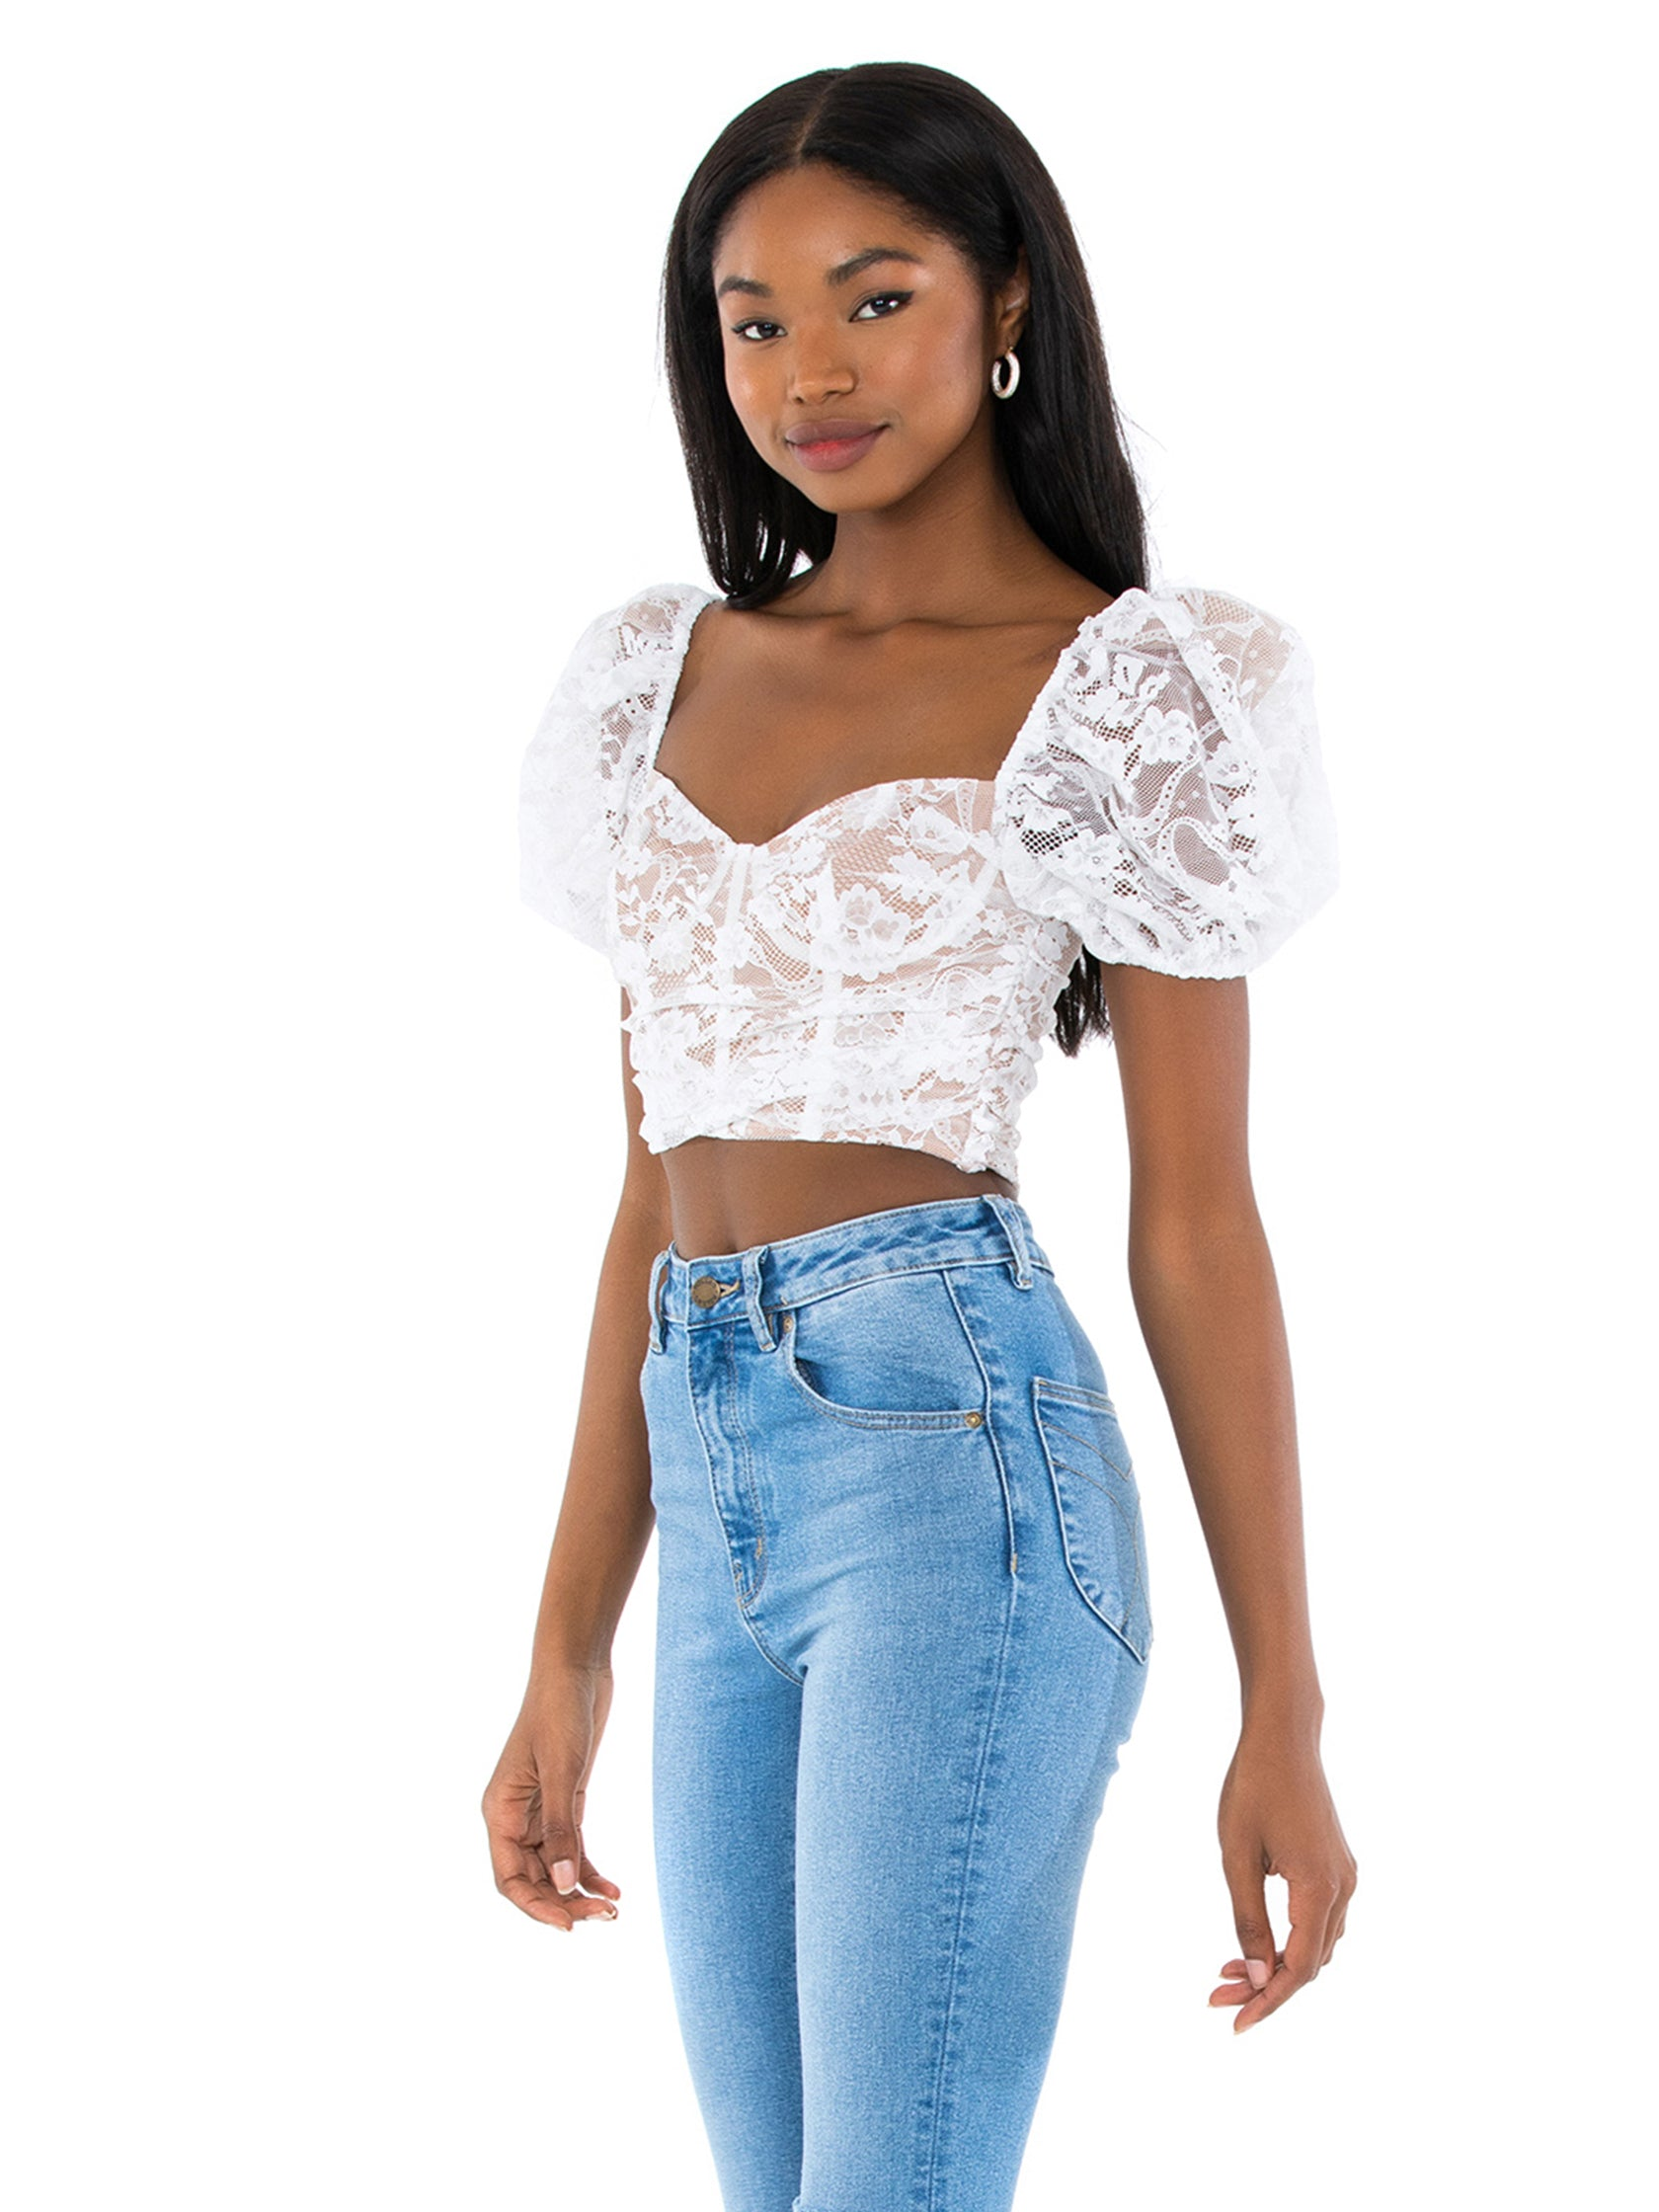 Women wearing a top rental from For Love & Lemons called Rosalie Crop Top